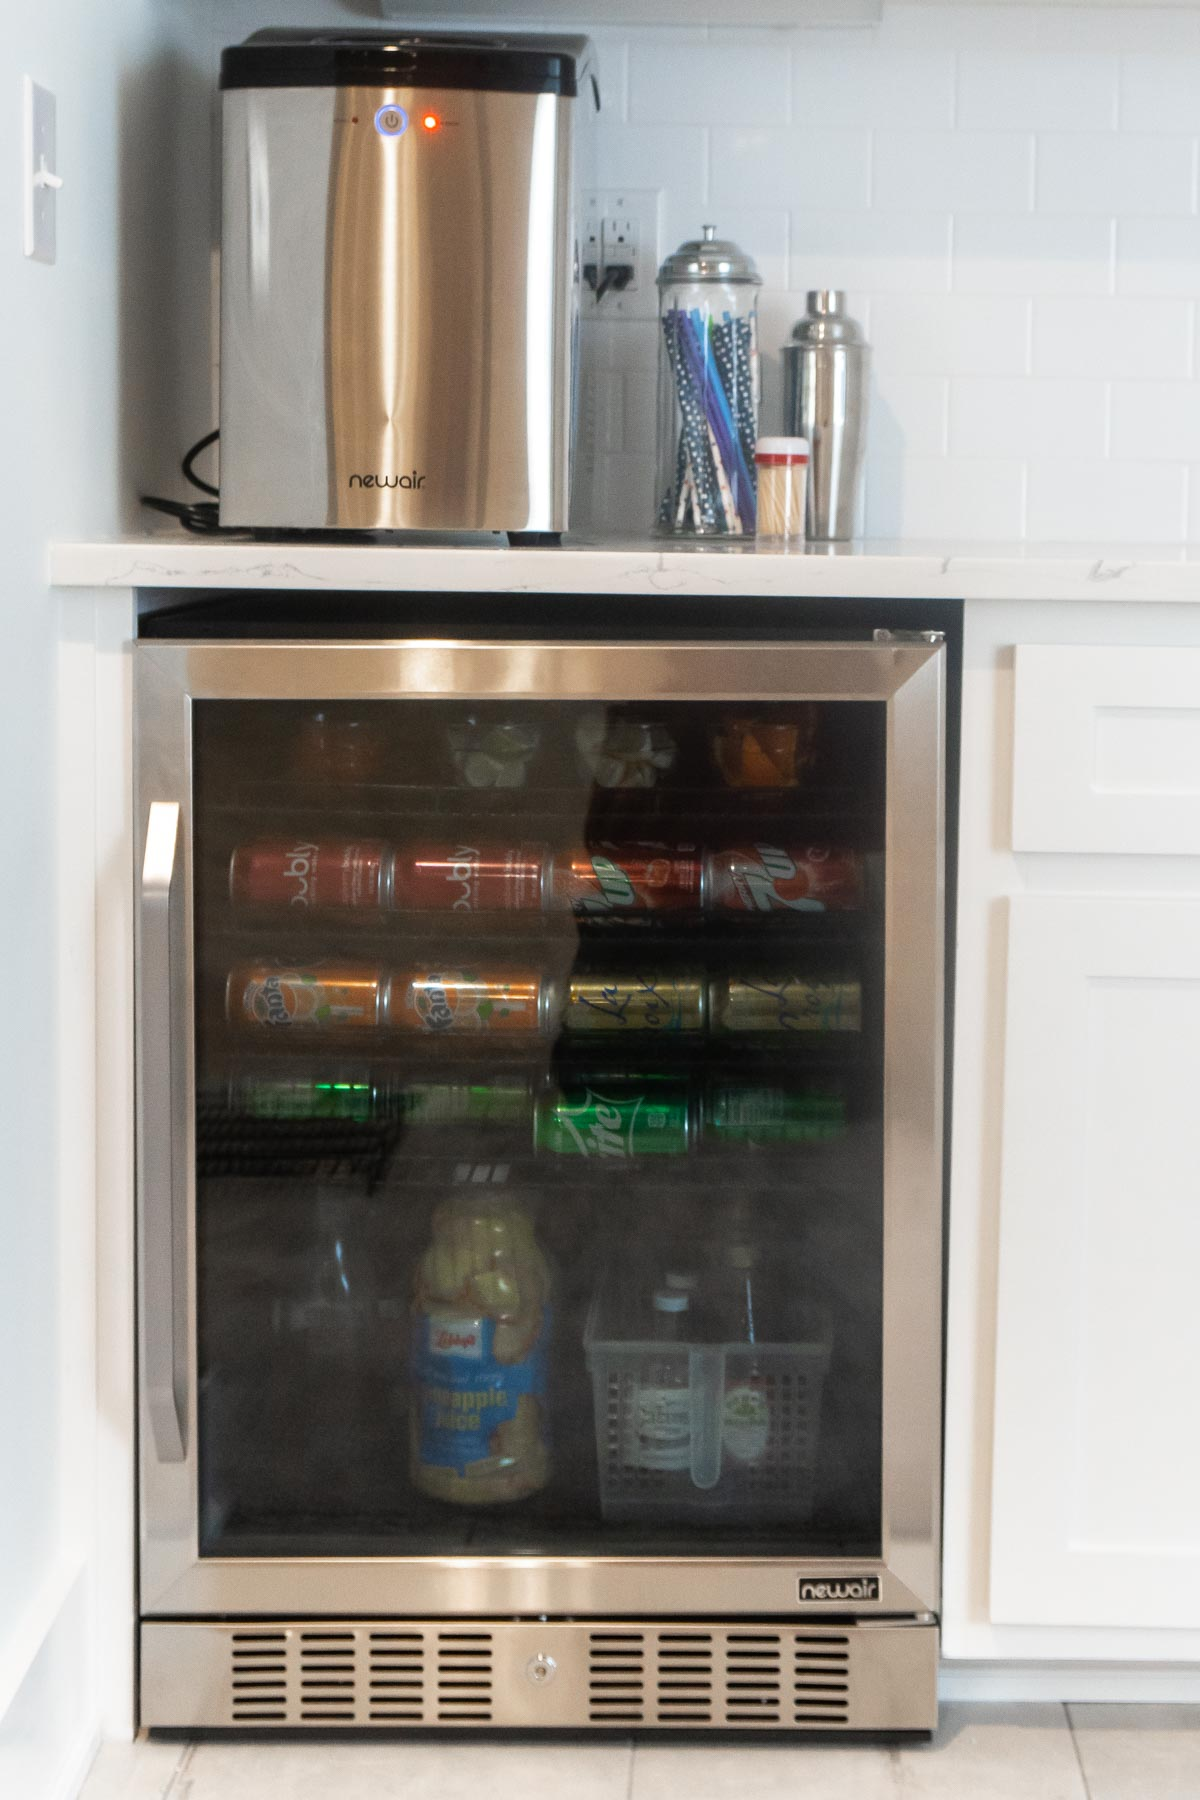 Beverage fridge in a dry bar